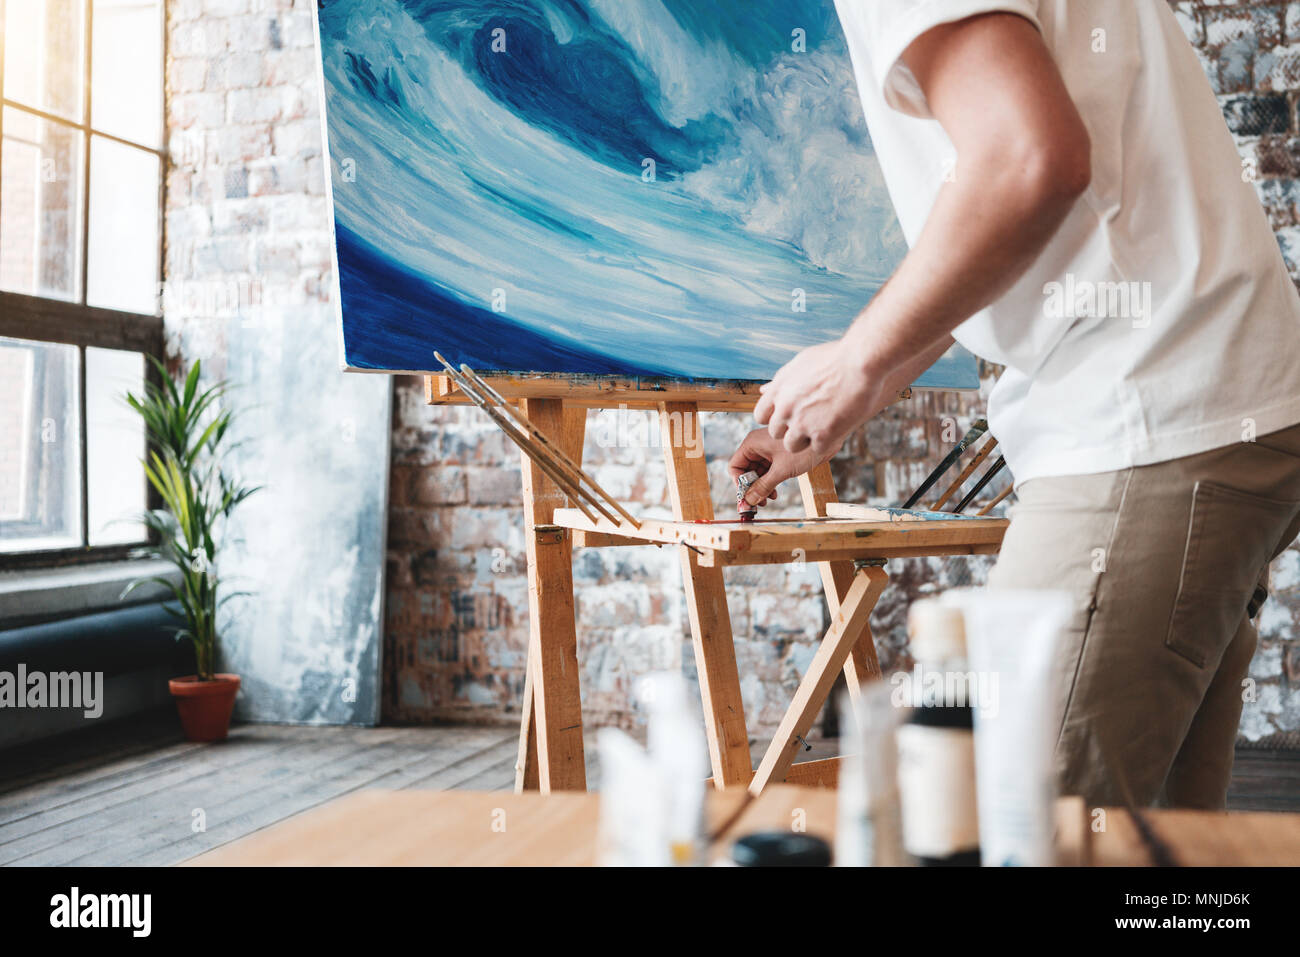 Artist work in art studio near easel with canvas. Painter paints a painting with oil paints in loft studio. Drawing workshop. Creative class - Stock Image